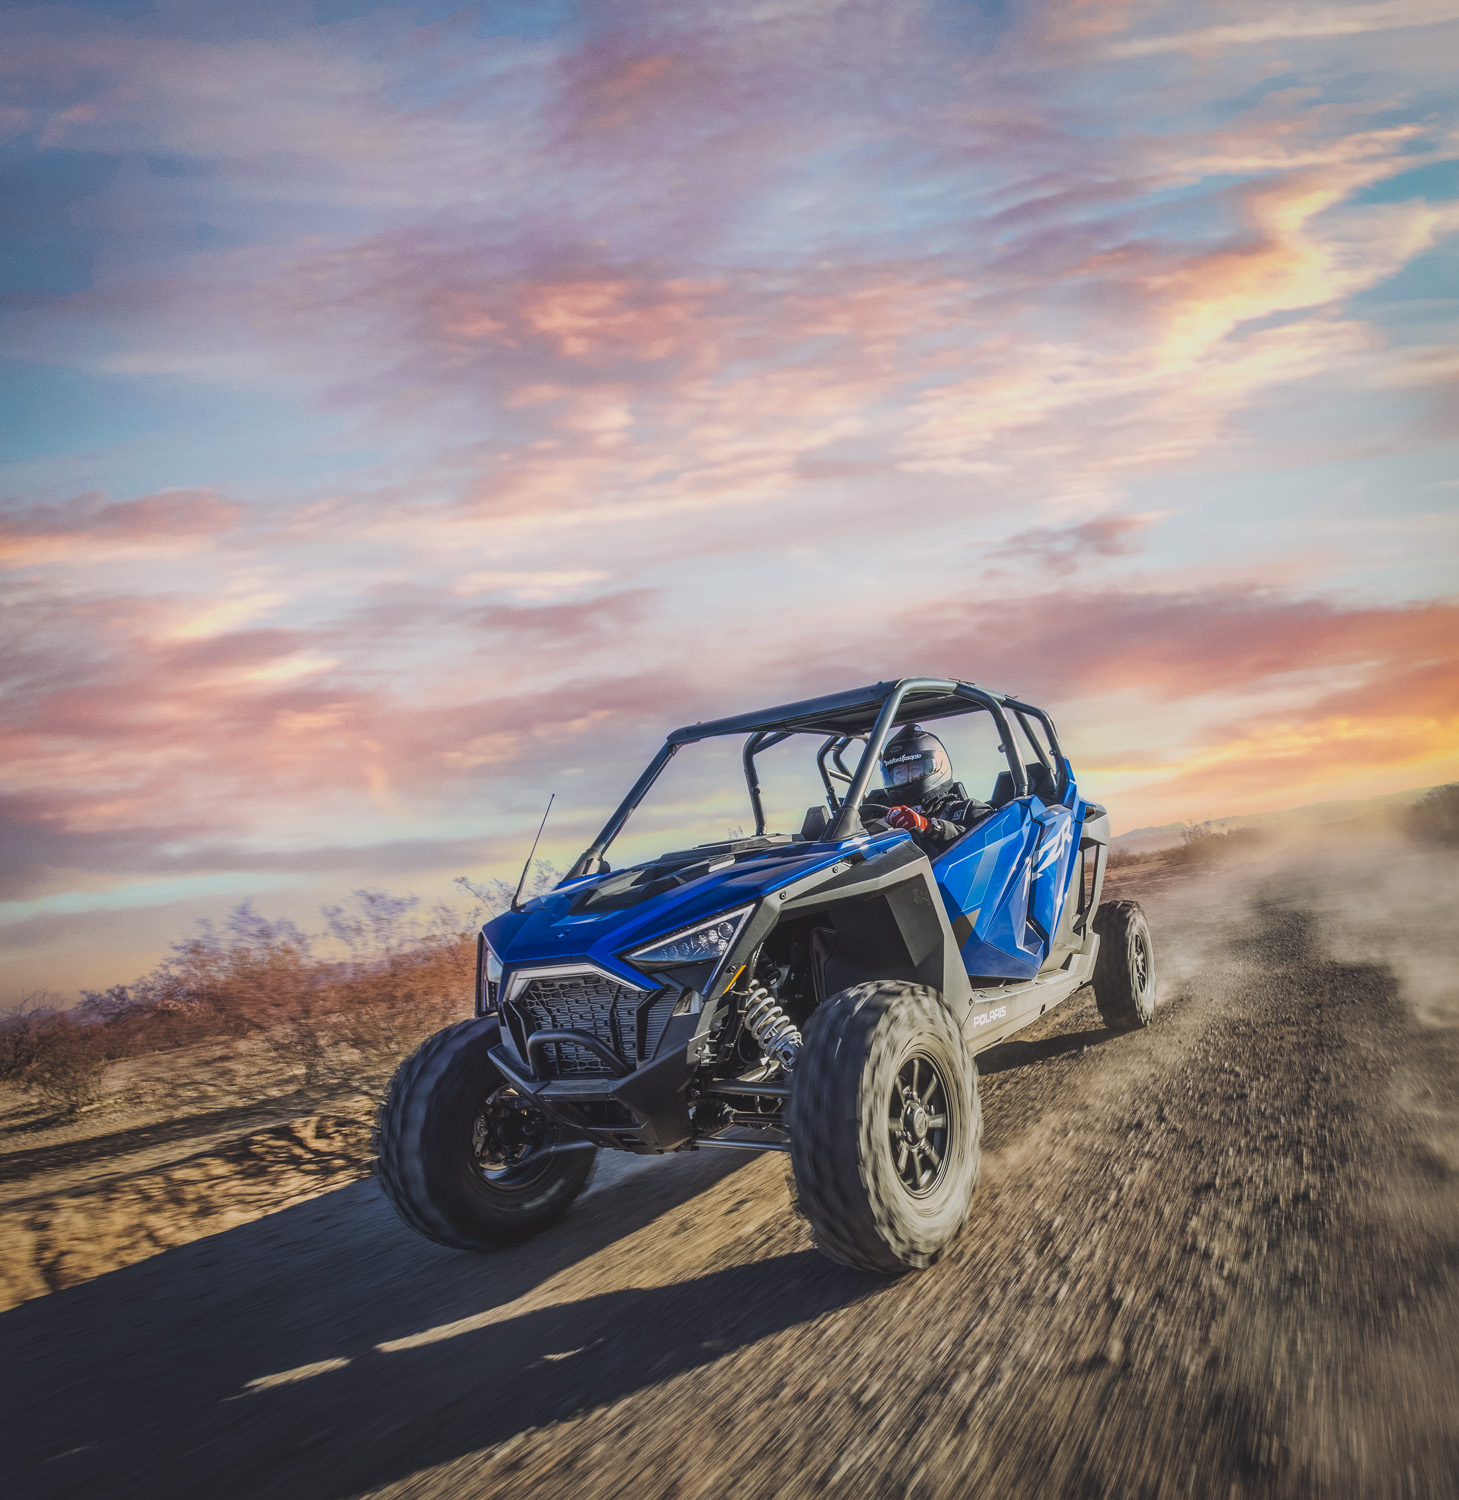 New RZR Pro XP Rockford Fosgate Limited-Editions